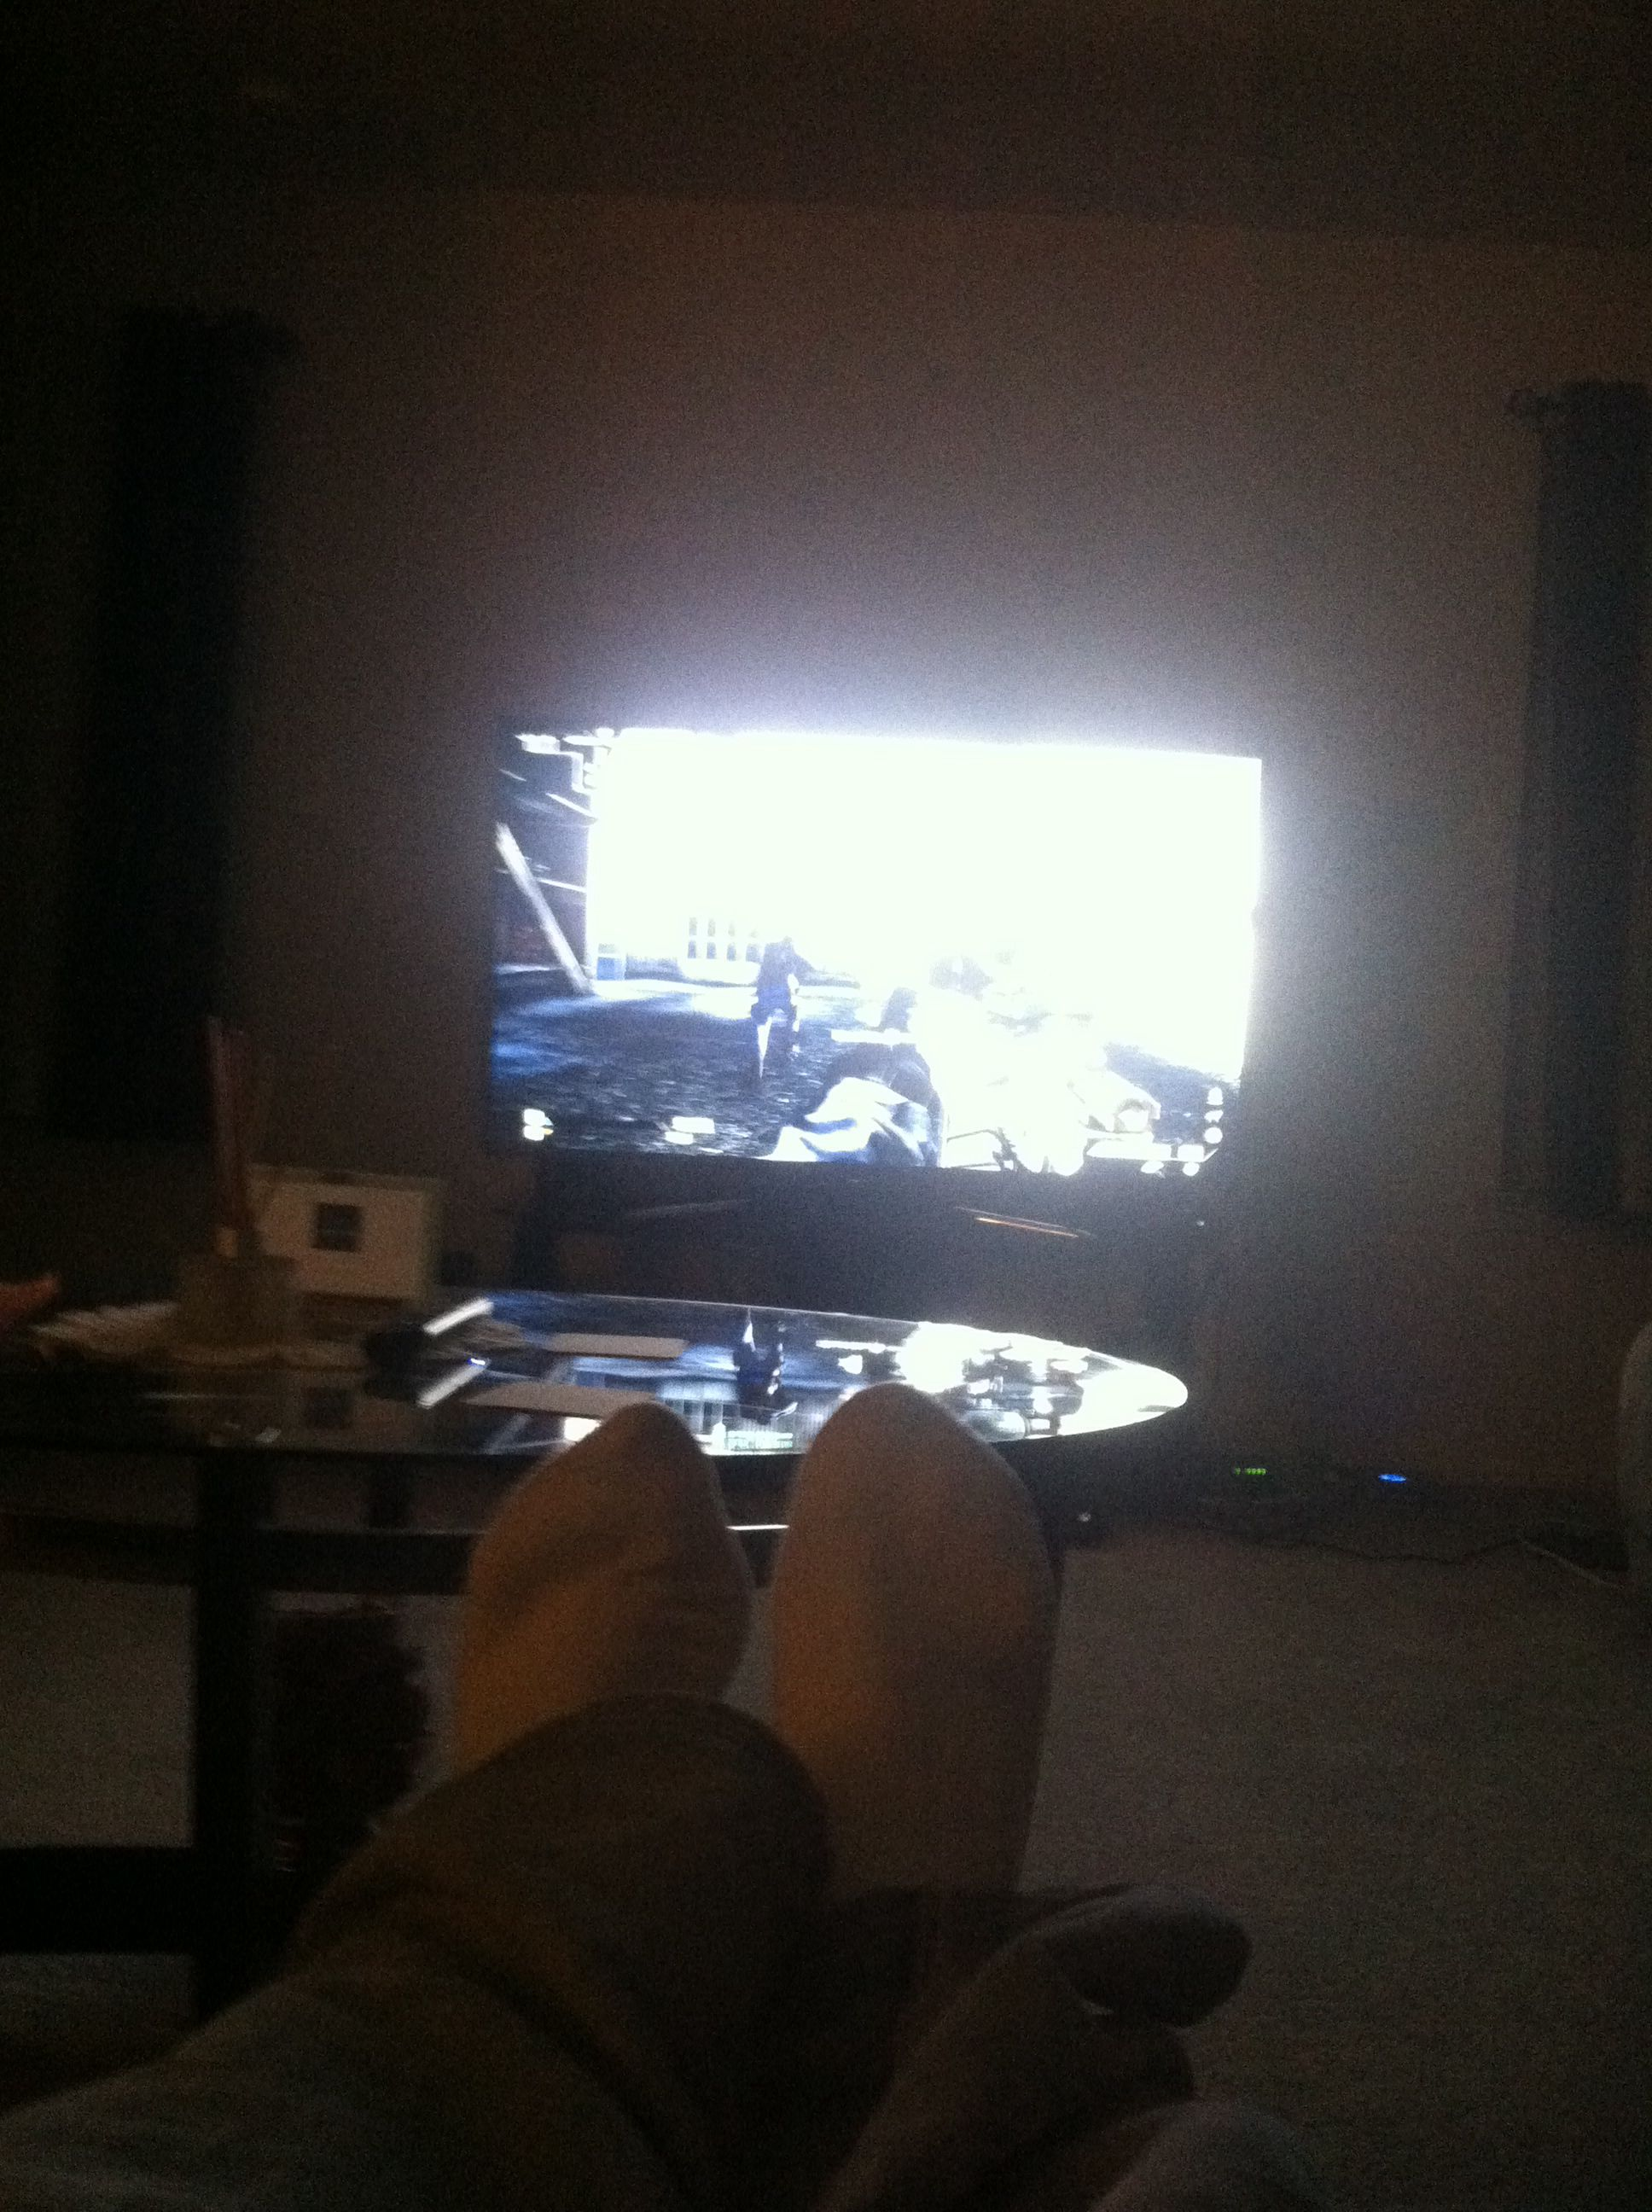 Relaxing At Home Watching Tv Nothing Else To Do But Enjoy Some